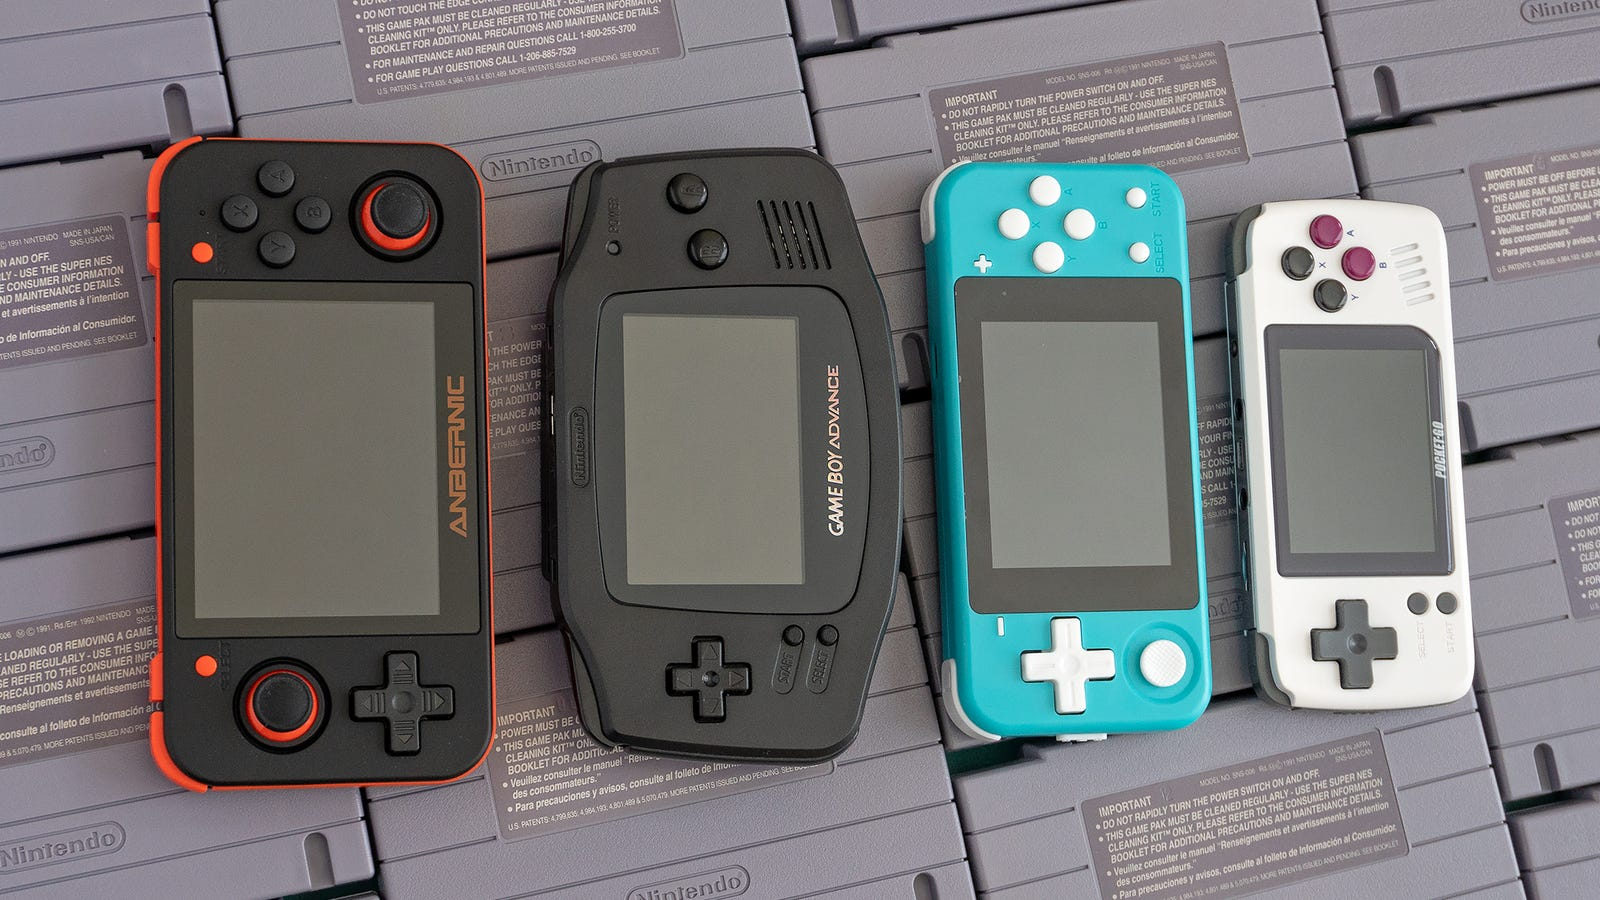 From left to right, a size comparison of the RG350, the Game Boy Advance, the Powkiddy Q90, and the PocketGo.